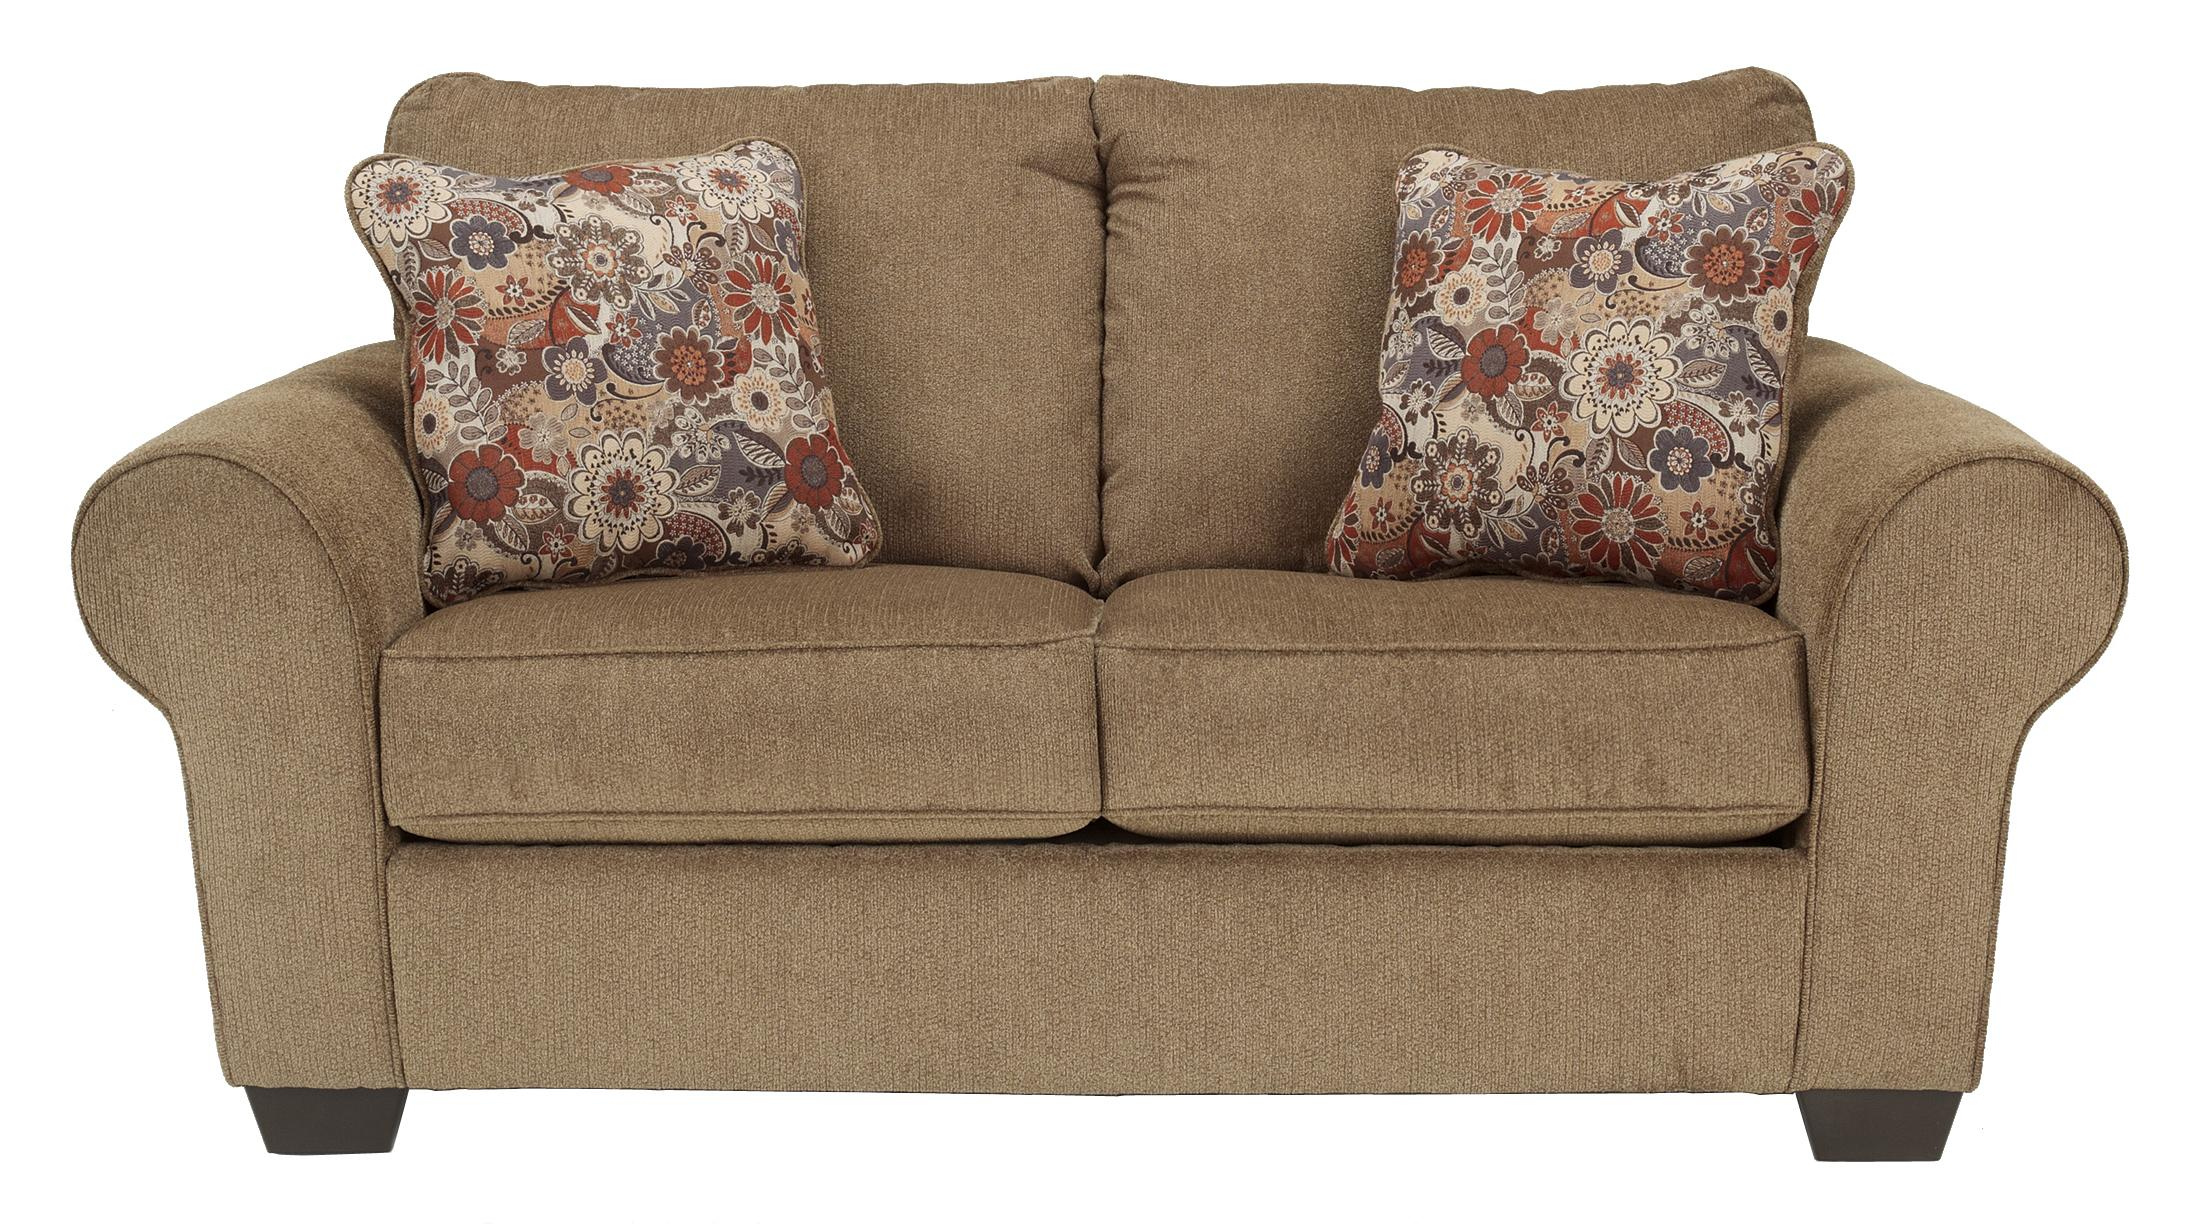 Ashley Furniture Galand Umber Loveseat With Rolled Arms